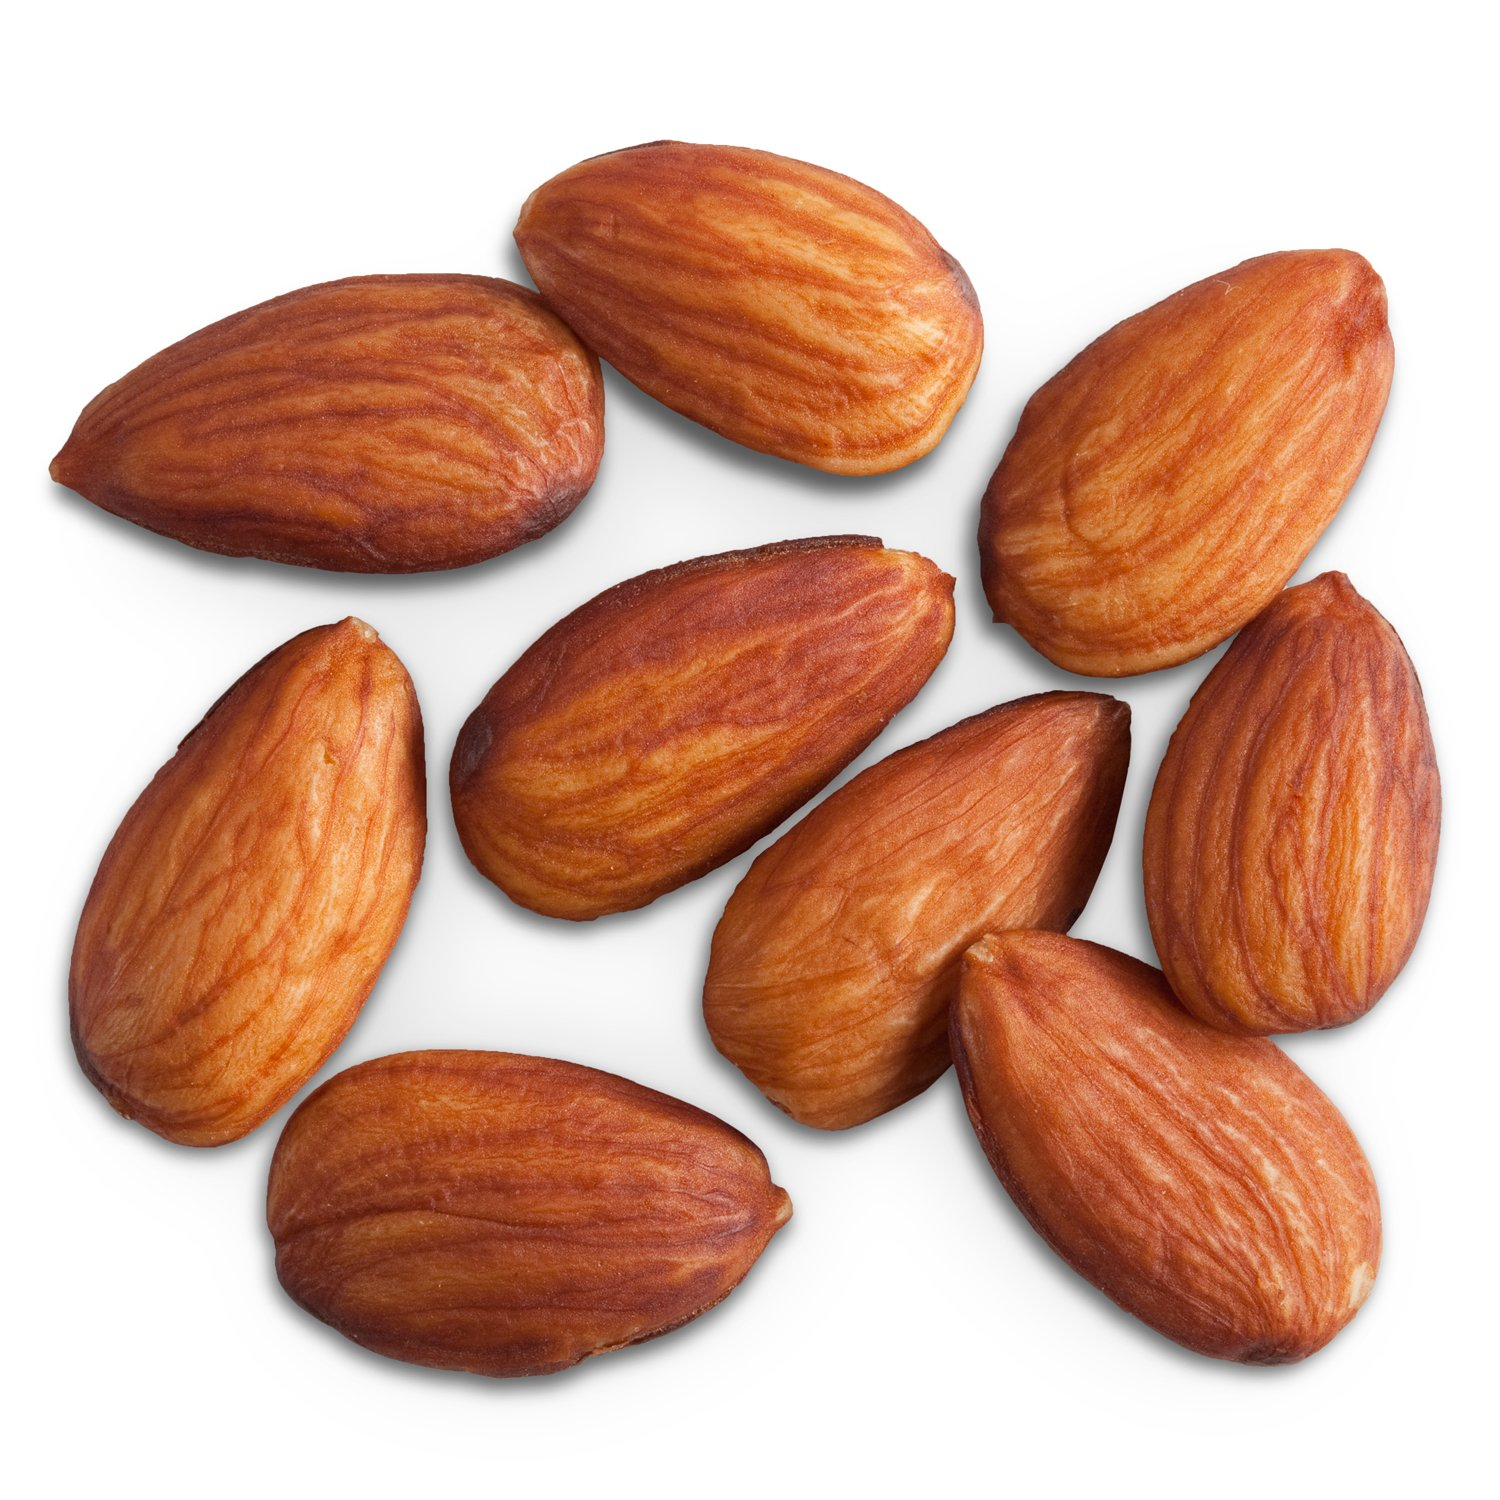 Almonds Nonpareil Roasted & No Salt Supreme | All Nuts ... Almonds